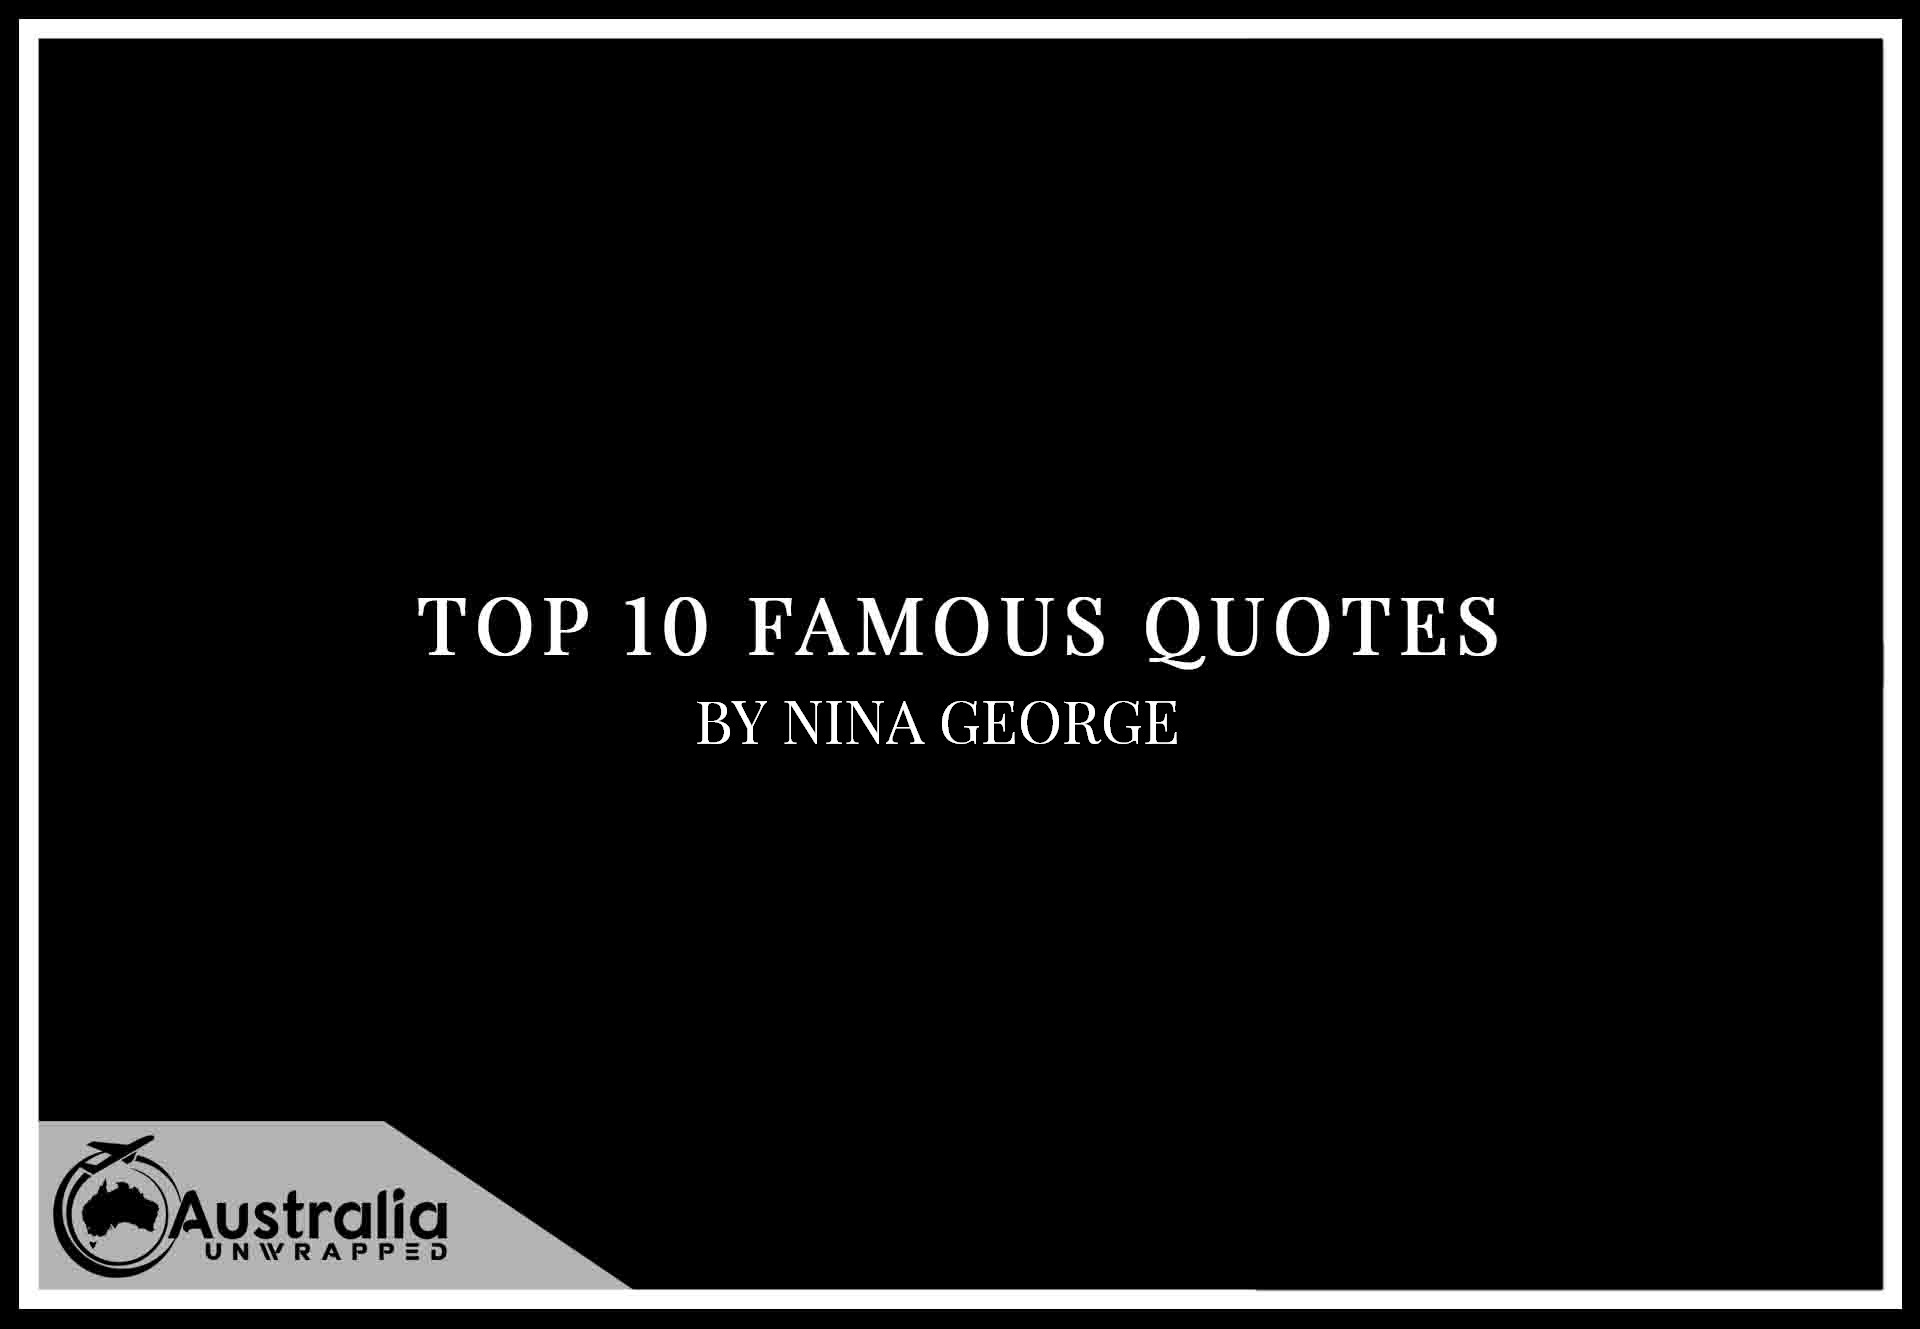 Top 10 Famous Quotes by Author Nina George